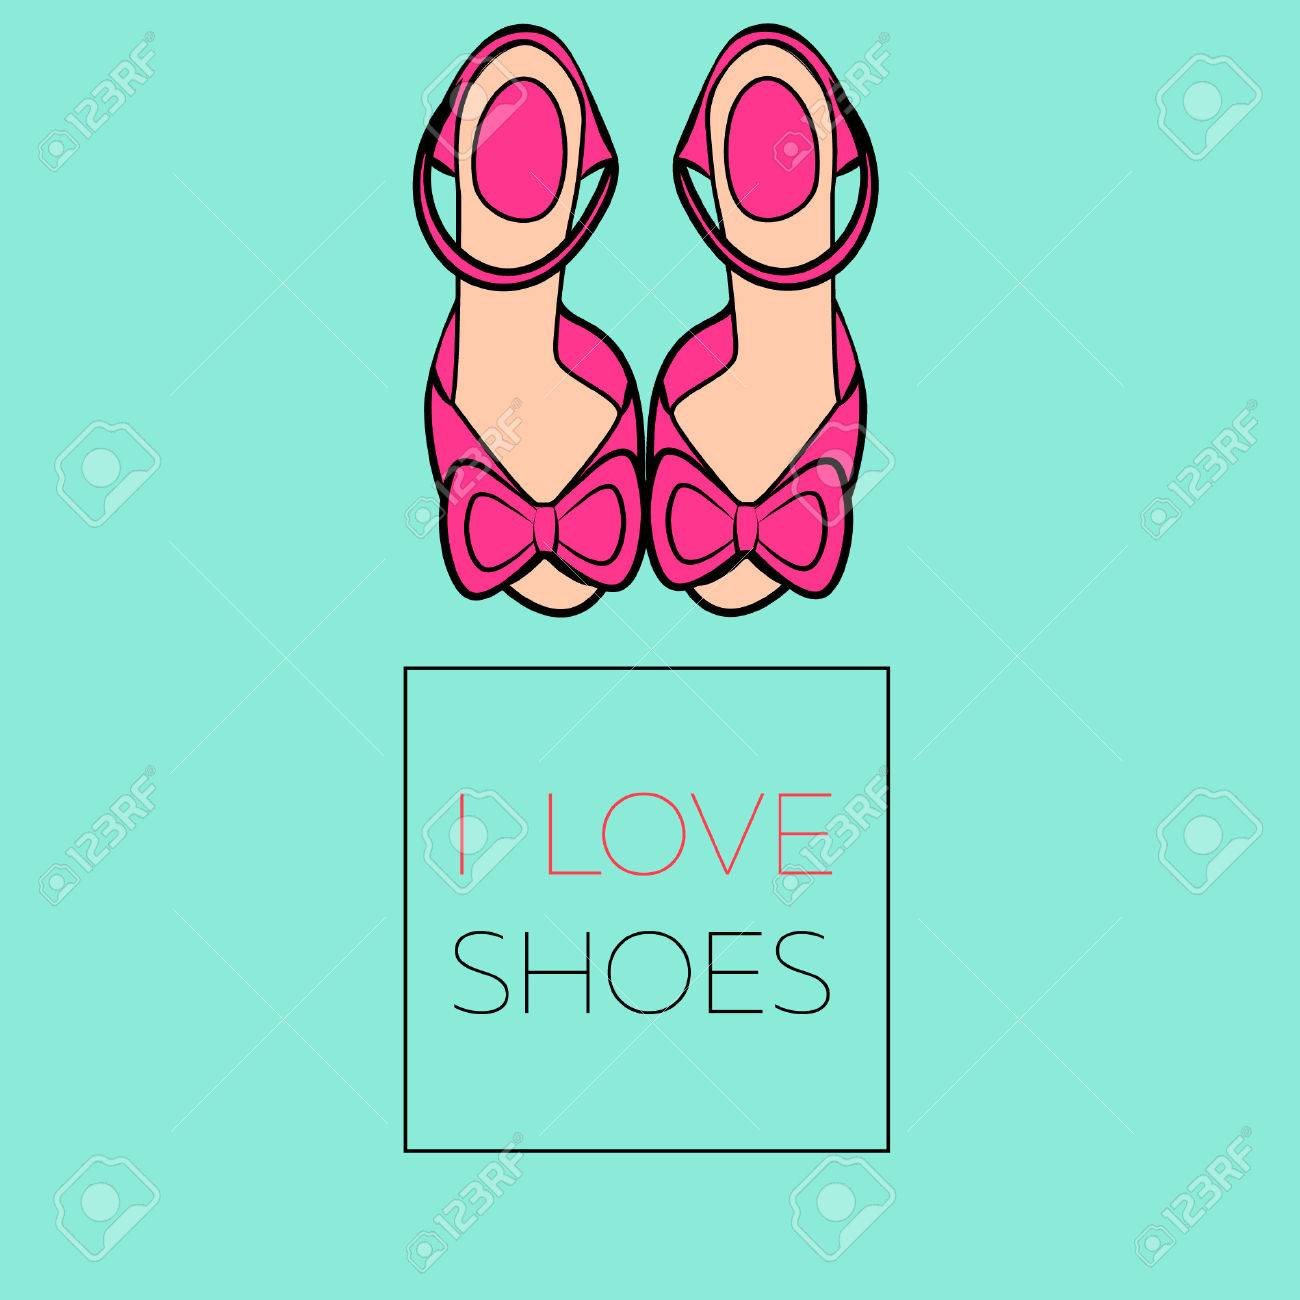 b79f5a8ae4b Flat illustration female pink high heel shoes sandals with bows..